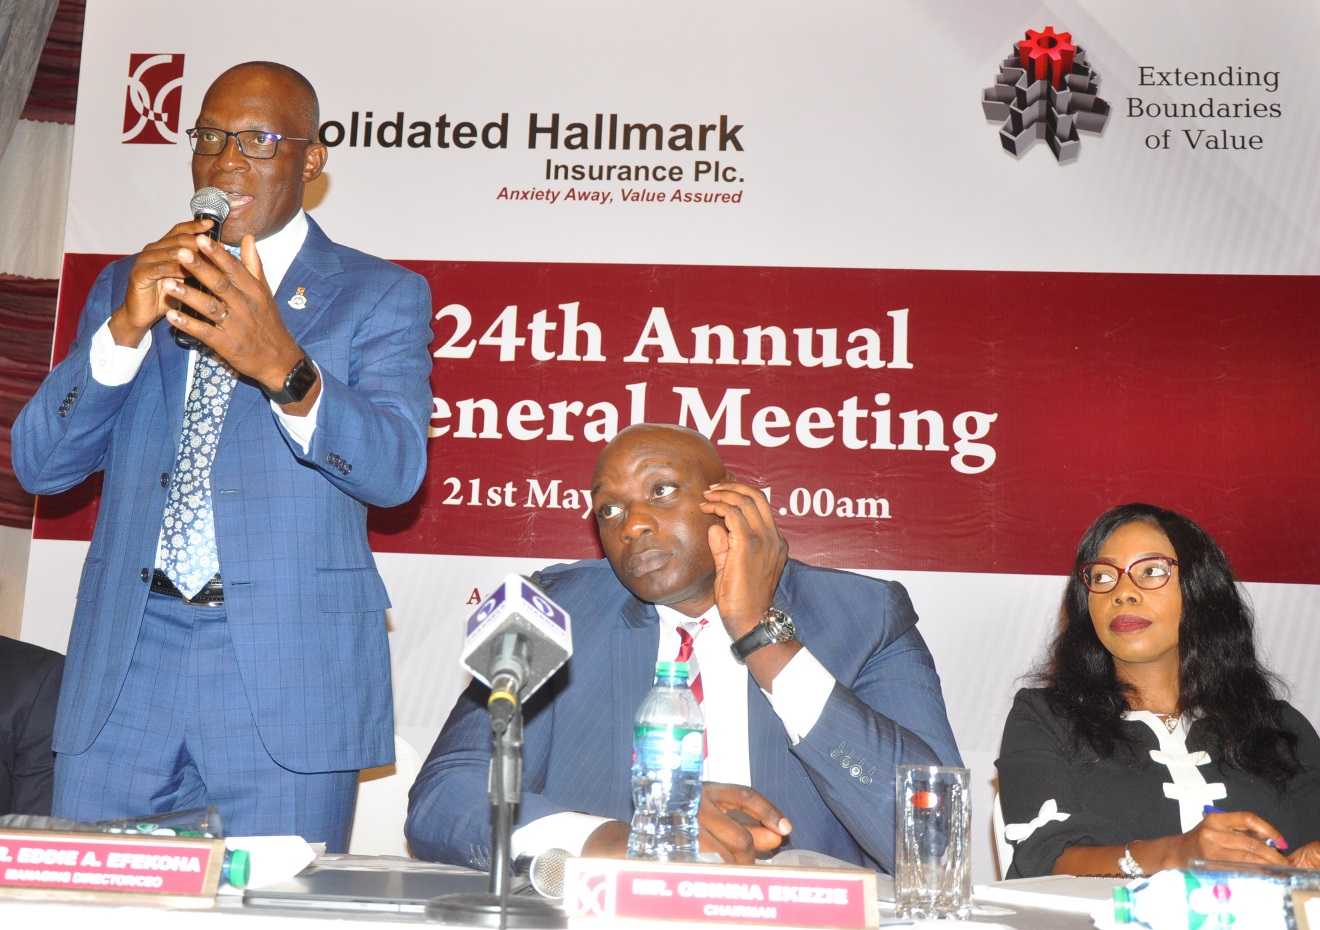 L-R: Mr. Eddie Efekoha, Managing Director/CEO, Consolidated Hallmark Insurance (CHI) Plc; Mr. Obinna Ekezie, Chairman Board and Mrs. Rukevwe Falana, Company Secretary/Legal Adviser